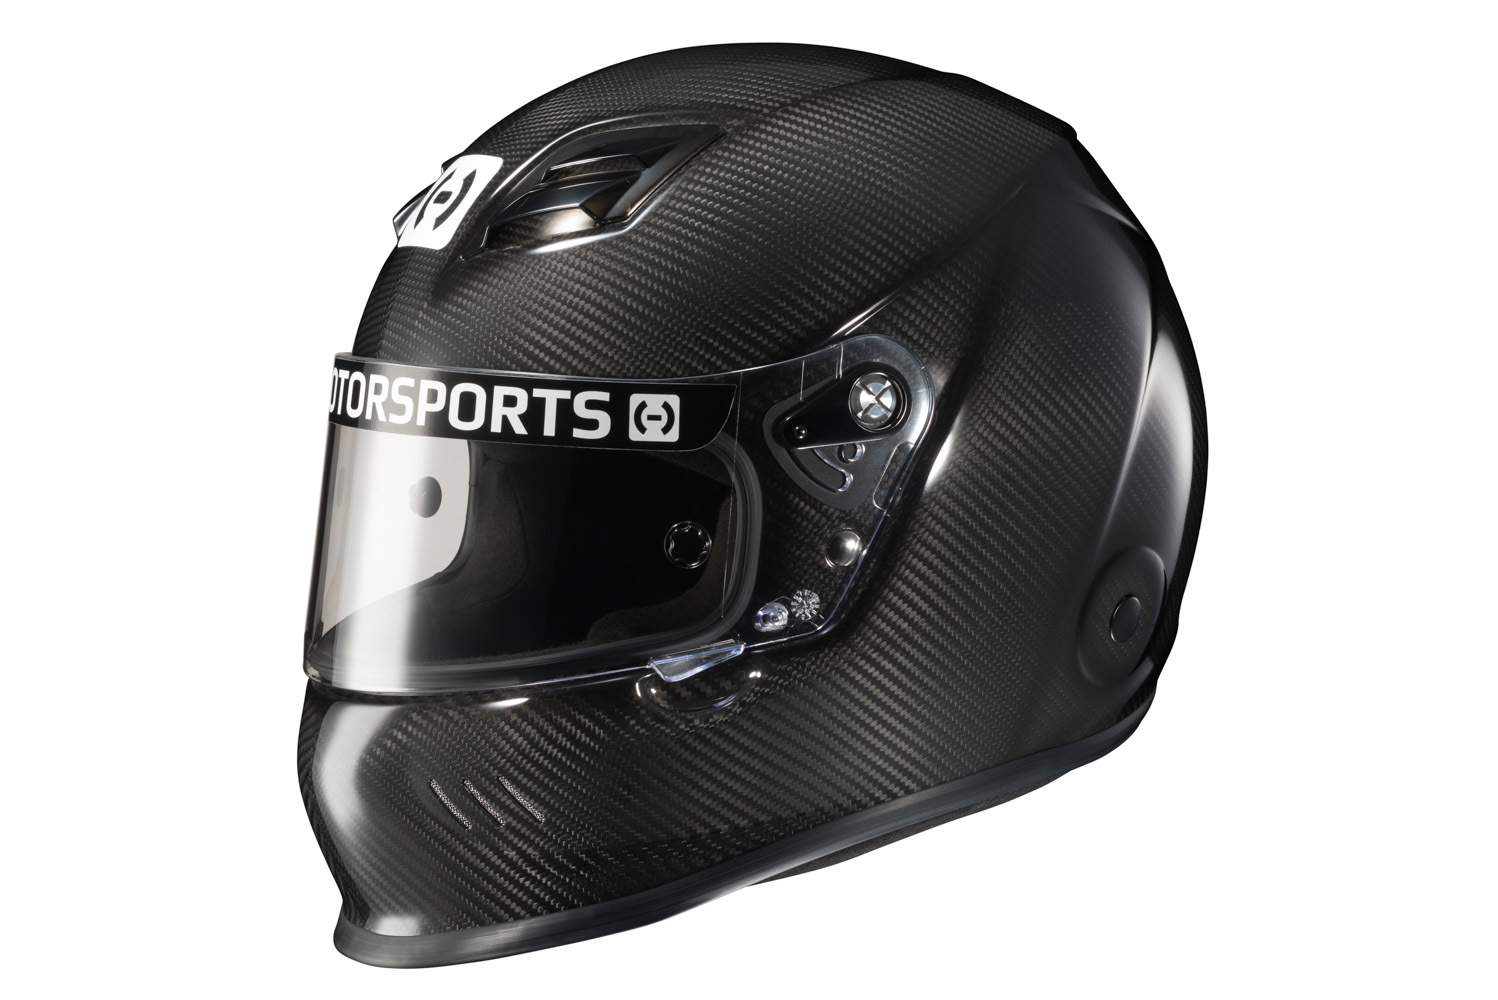 HJC Motorsports H10CXXL20 Helmet, H10, Full Face, Snell SA2020, Head and Neck Support Ready, Carbon Fiber, 2X-Large, Each